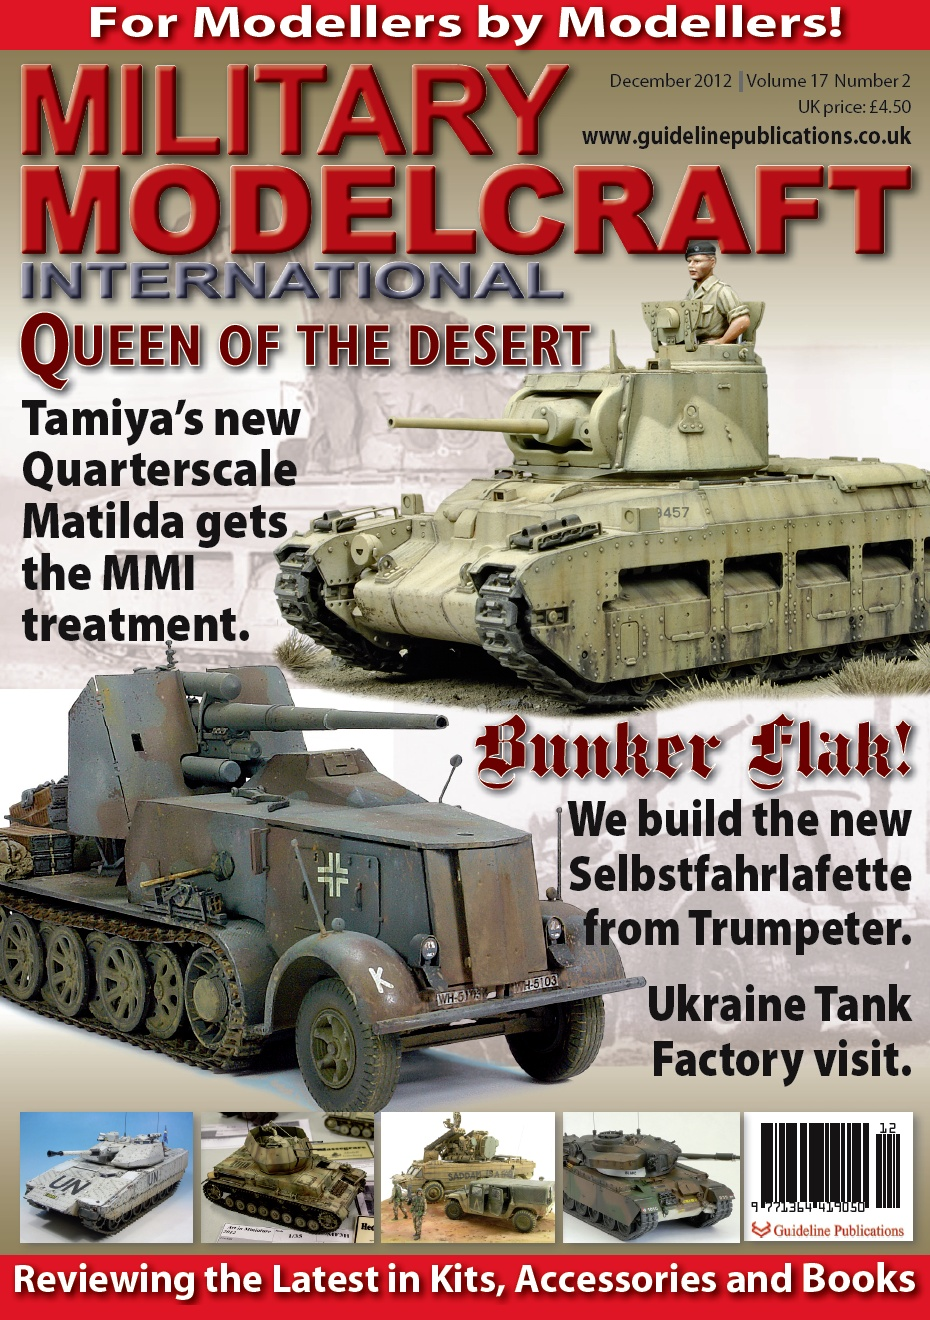 Guideline Publications Military Modelcraft December 2012 vol 17 - 2